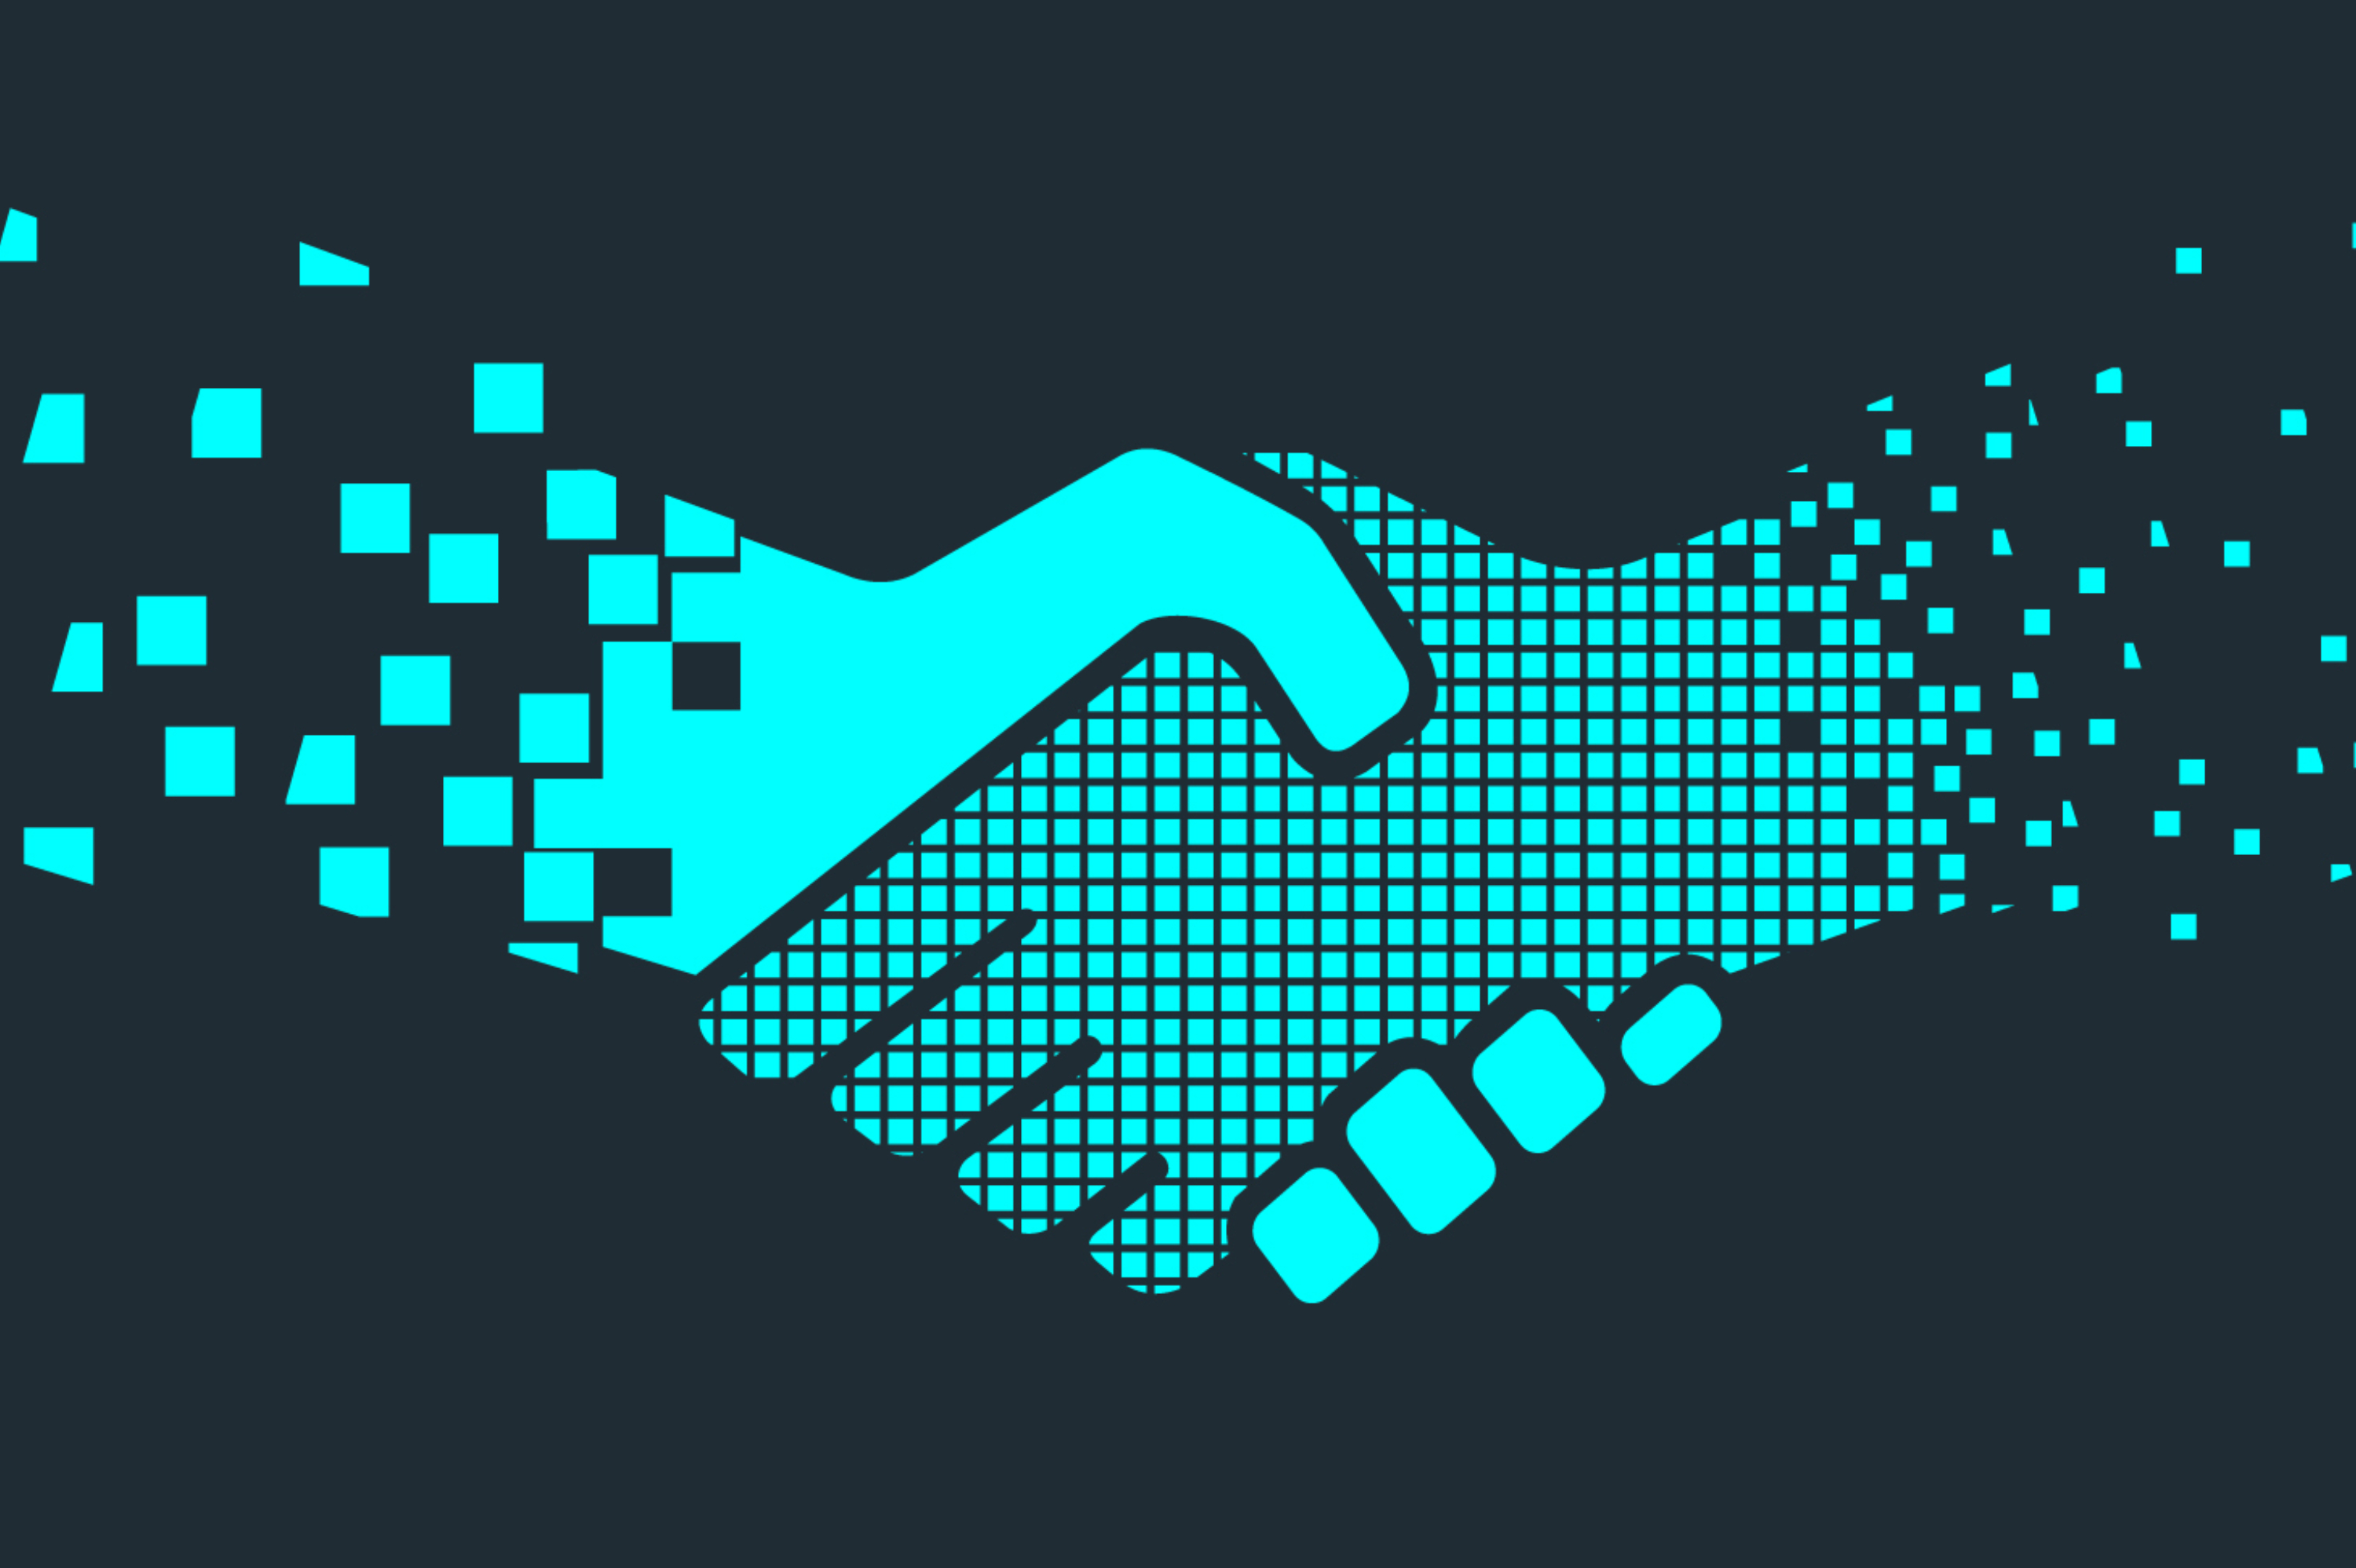 Illustration of a pixelated handshake